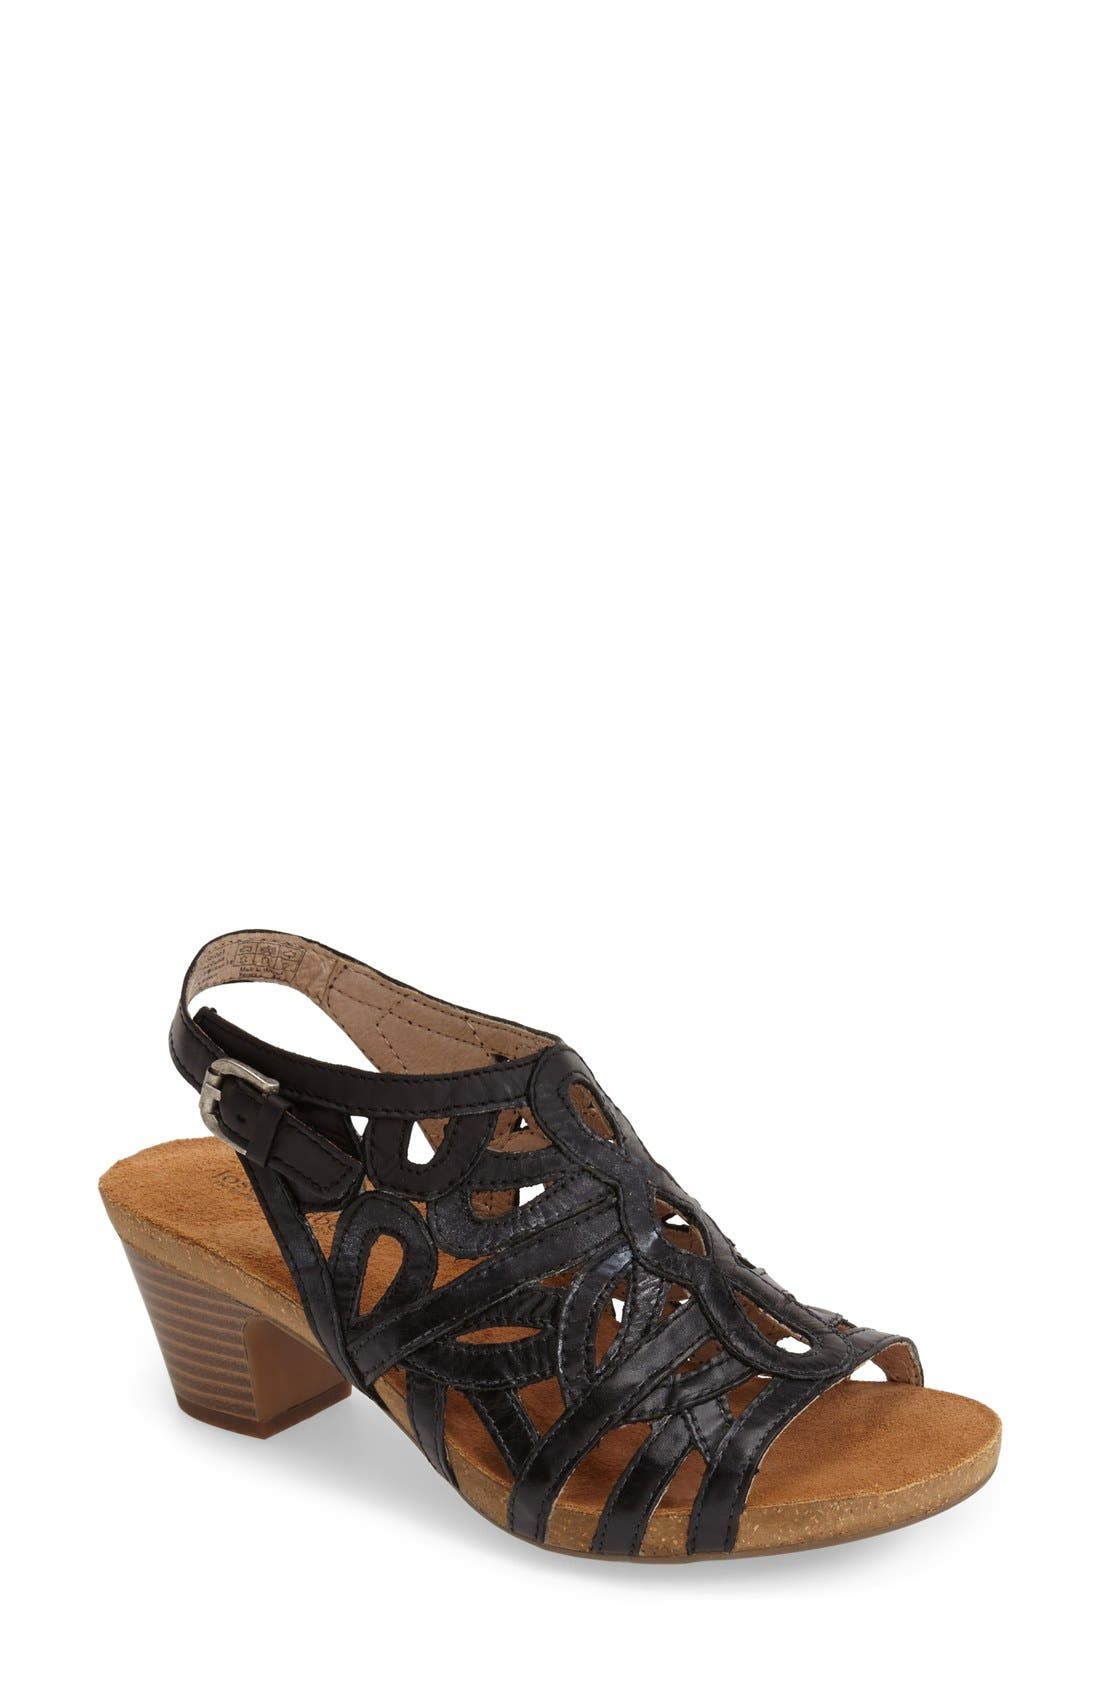 'Ruth 03' Sandal,                         Main,                         color, 003